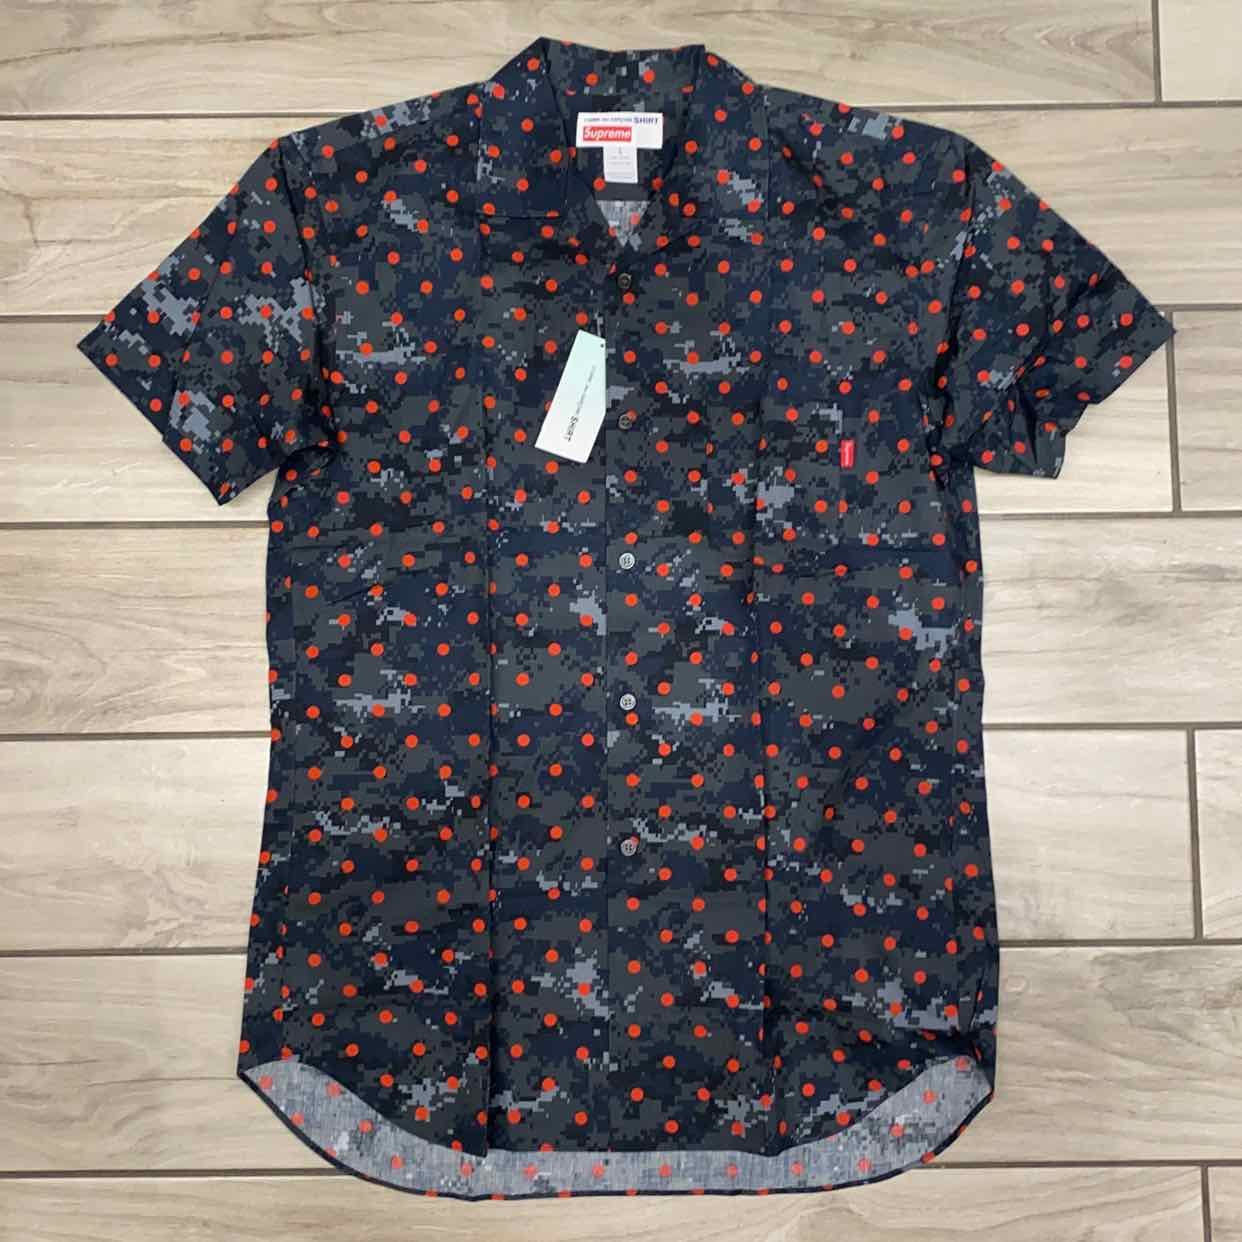 SUPREME-x-CDG-LOOP-COLLAR-Navy-Size-Large-New_2014A.jpg